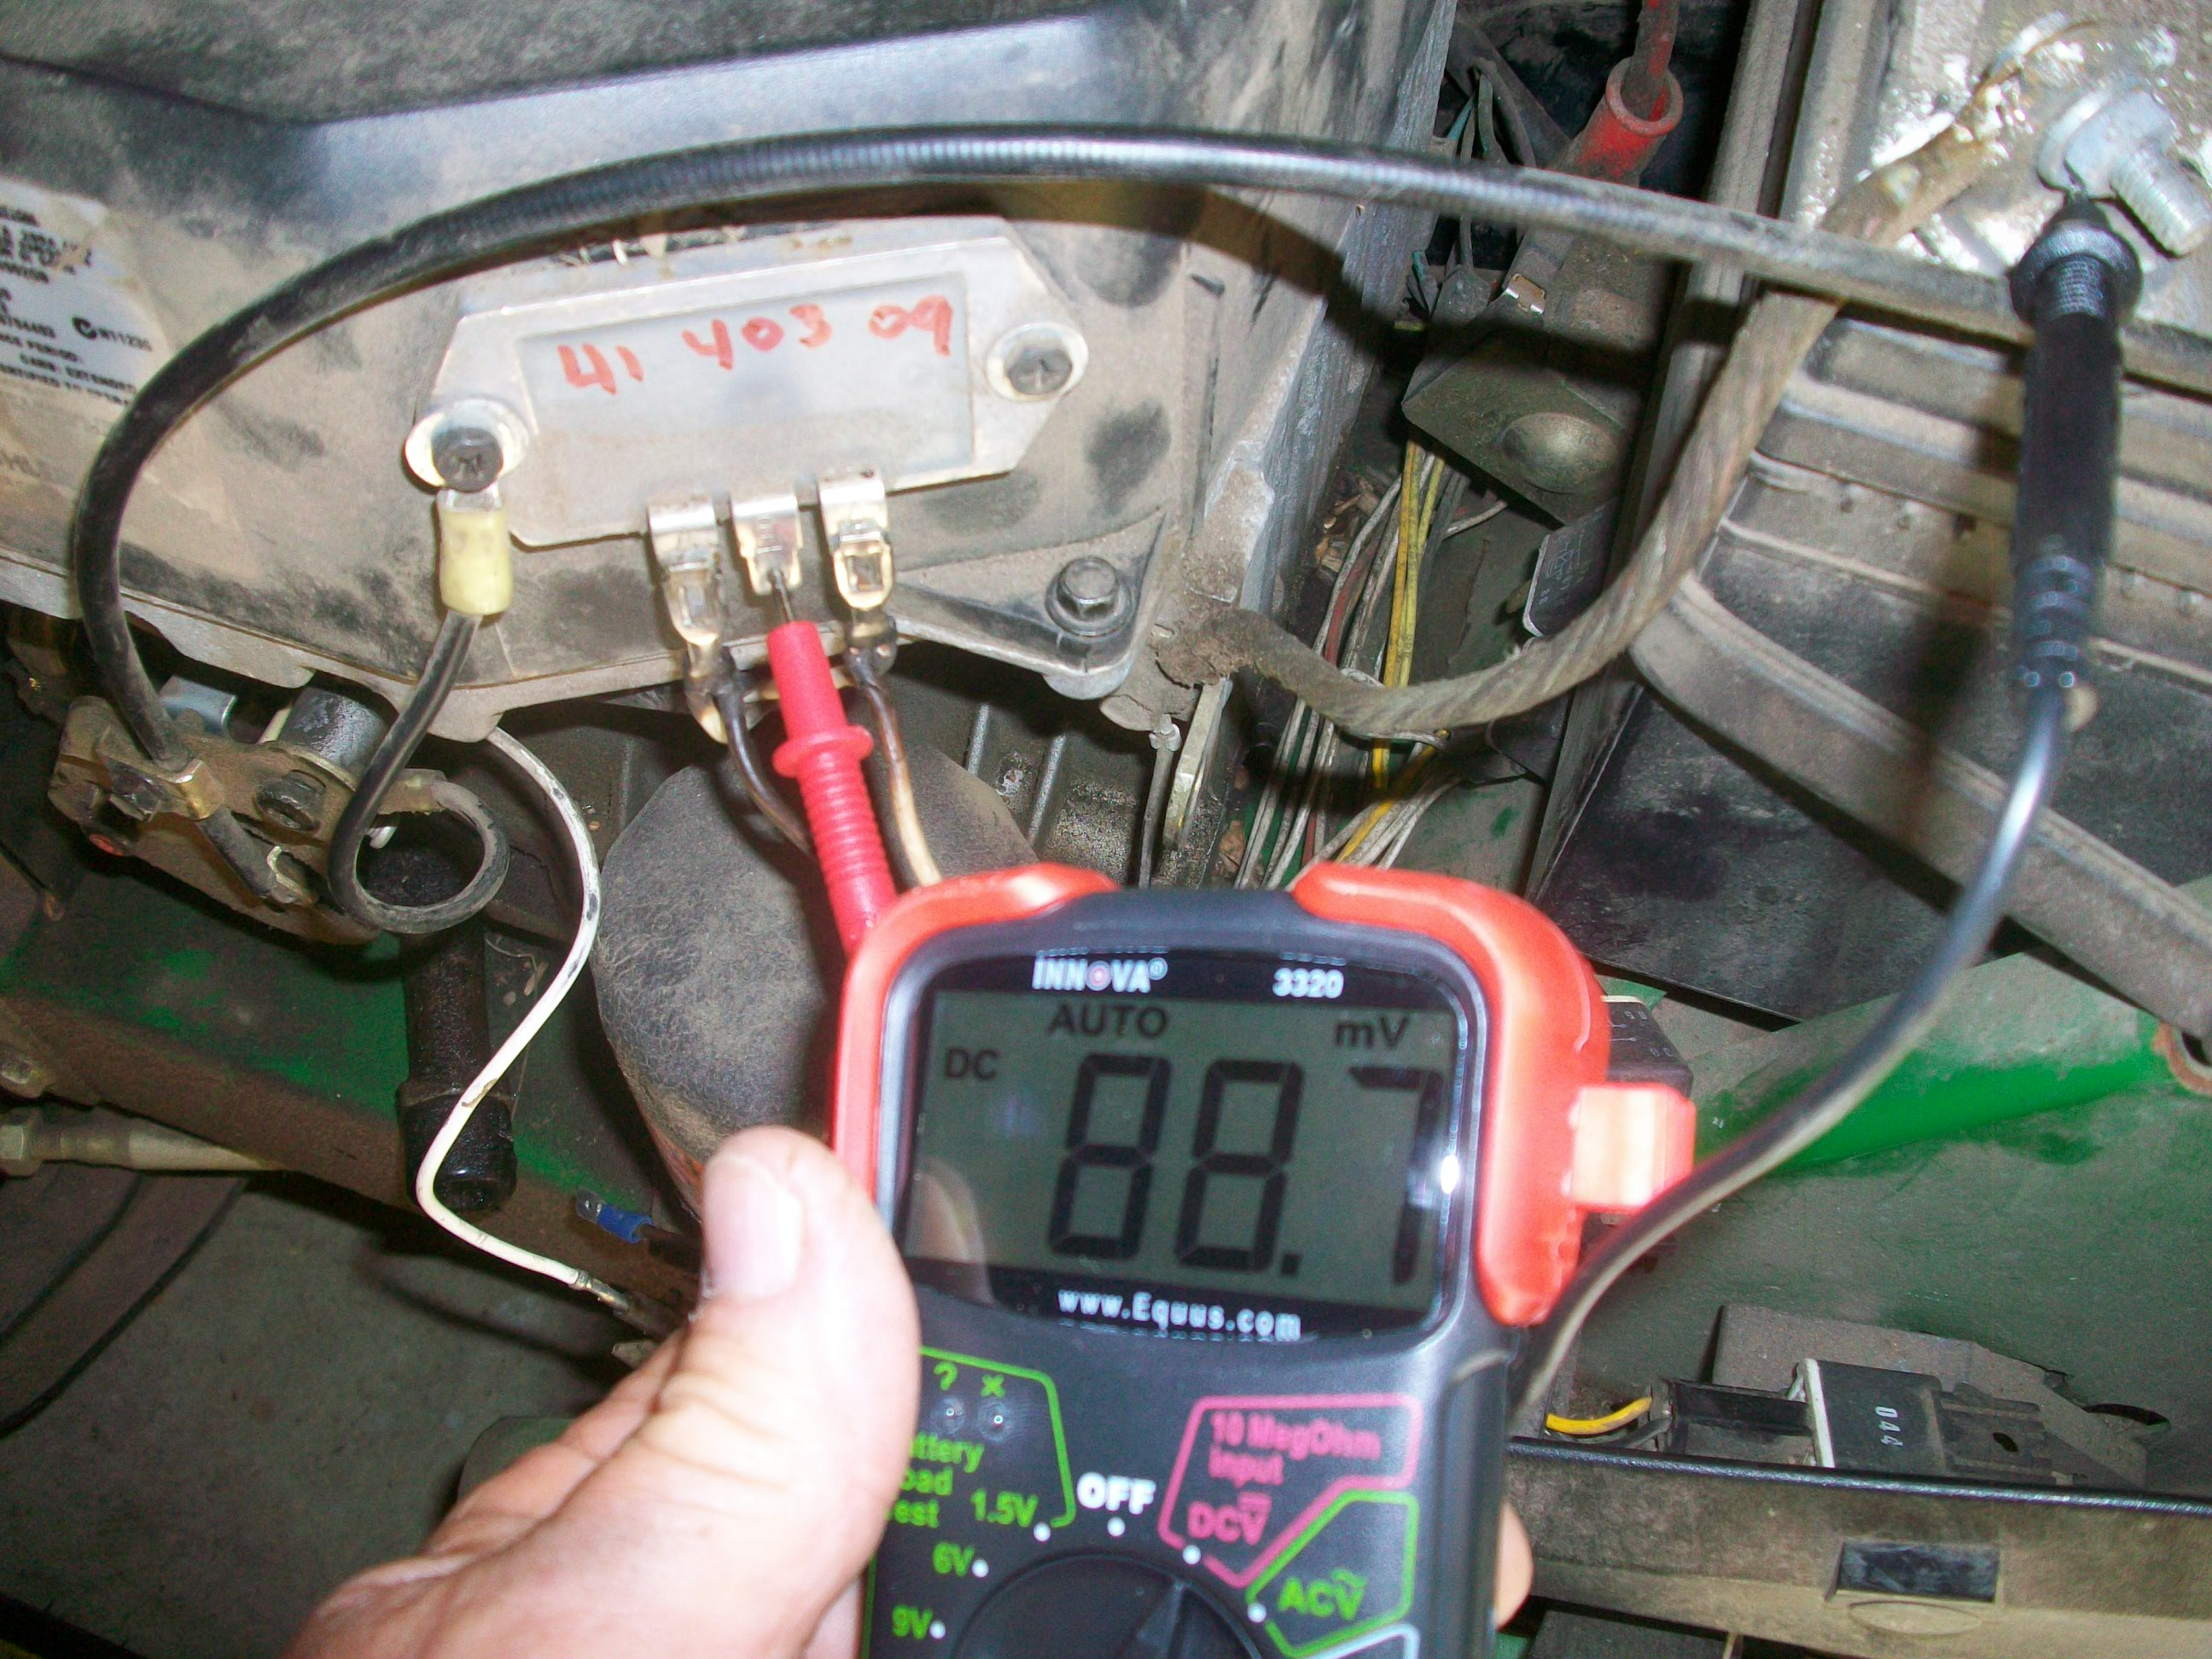 Bad Deere Day/Burned Wiring | My Tractor Forum on john deere f911 wiring diagram, john deere f925 wiring diagram, john deere 145 wiring-diagram, john deere z225 wiring-diagram, john deere 325 wiring-diagram, john deere x324 wiring diagram, john deere 345 wiring-diagram, john deere 133 wiring-diagram, john deere gt245 wiring diagram, john deere gx335 wiring diagram, john deere 4430 wiring-diagram, john deere lx280 wiring diagram, john deere lx279 wiring diagram, john deere la115 wiring diagram, john deere la140 wiring diagram, john deere la125 wiring diagram, john deere ignition wiring diagram, john deere la120 wiring diagram, john deere mower wiring diagram, john deere 1020 wiring-diagram,